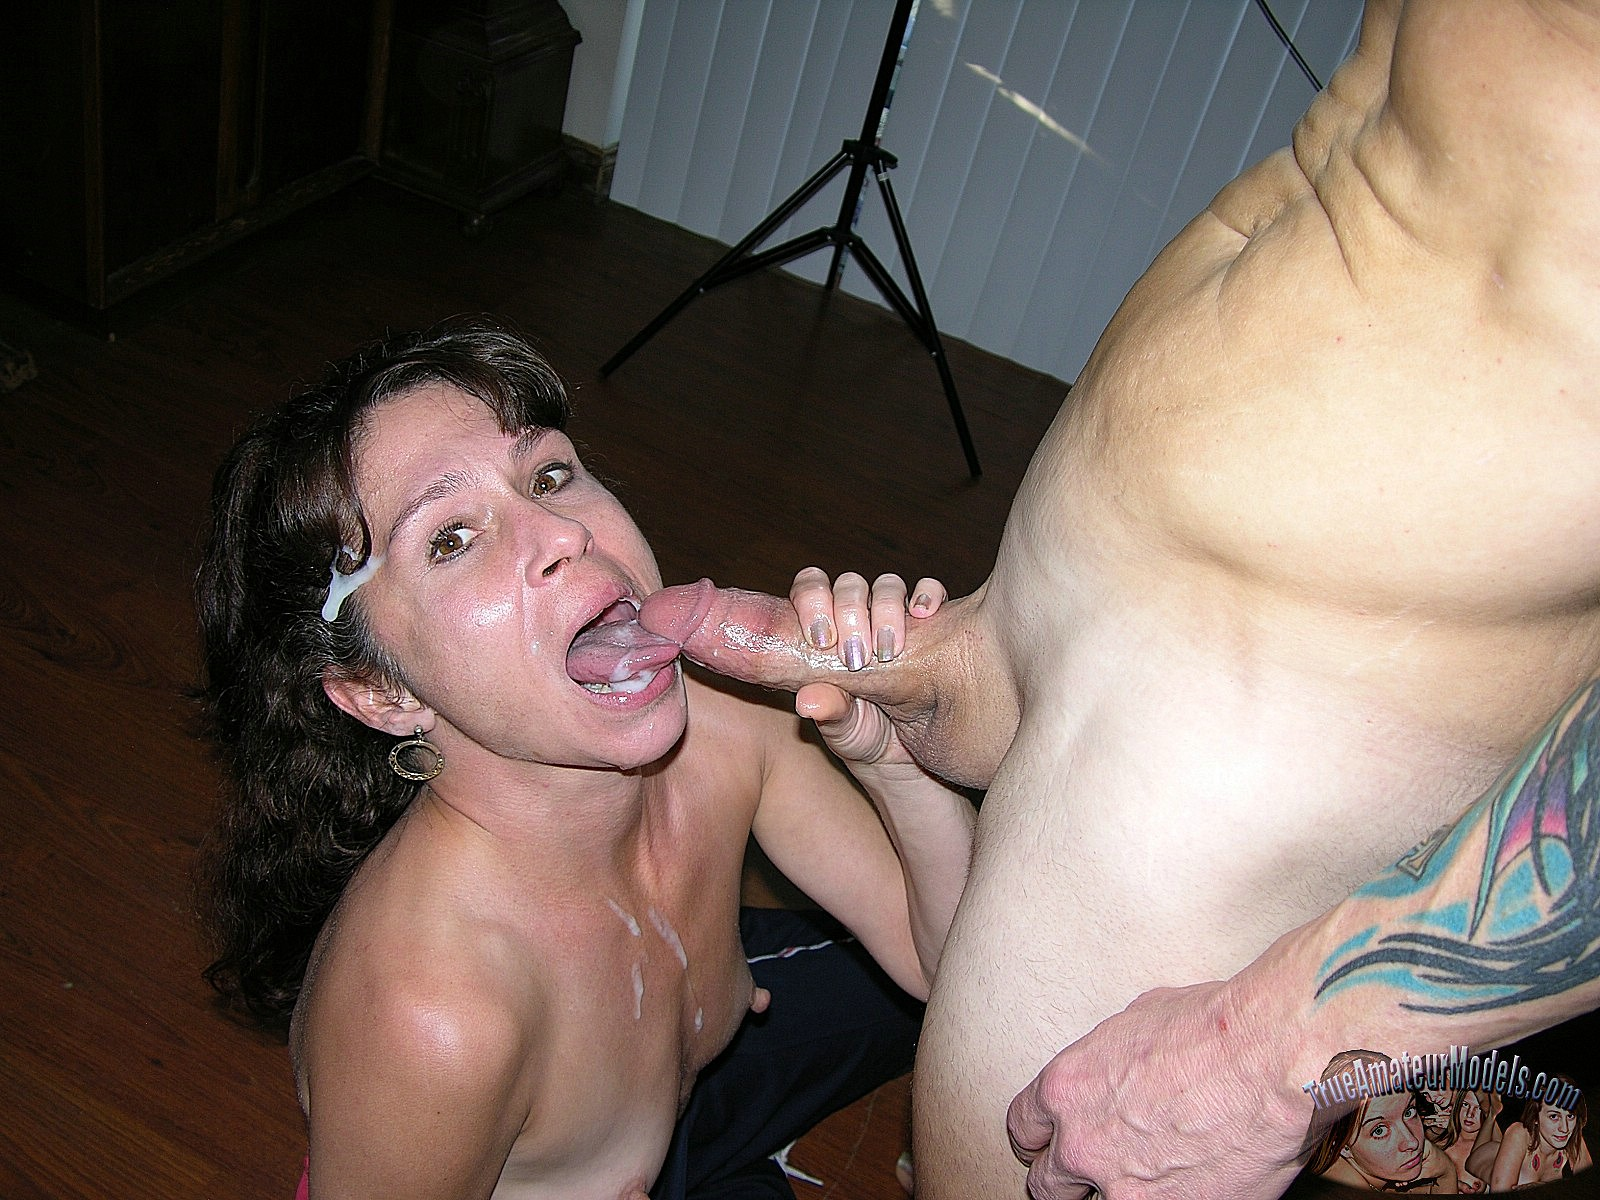 Yes Hot soccer mom blowjob